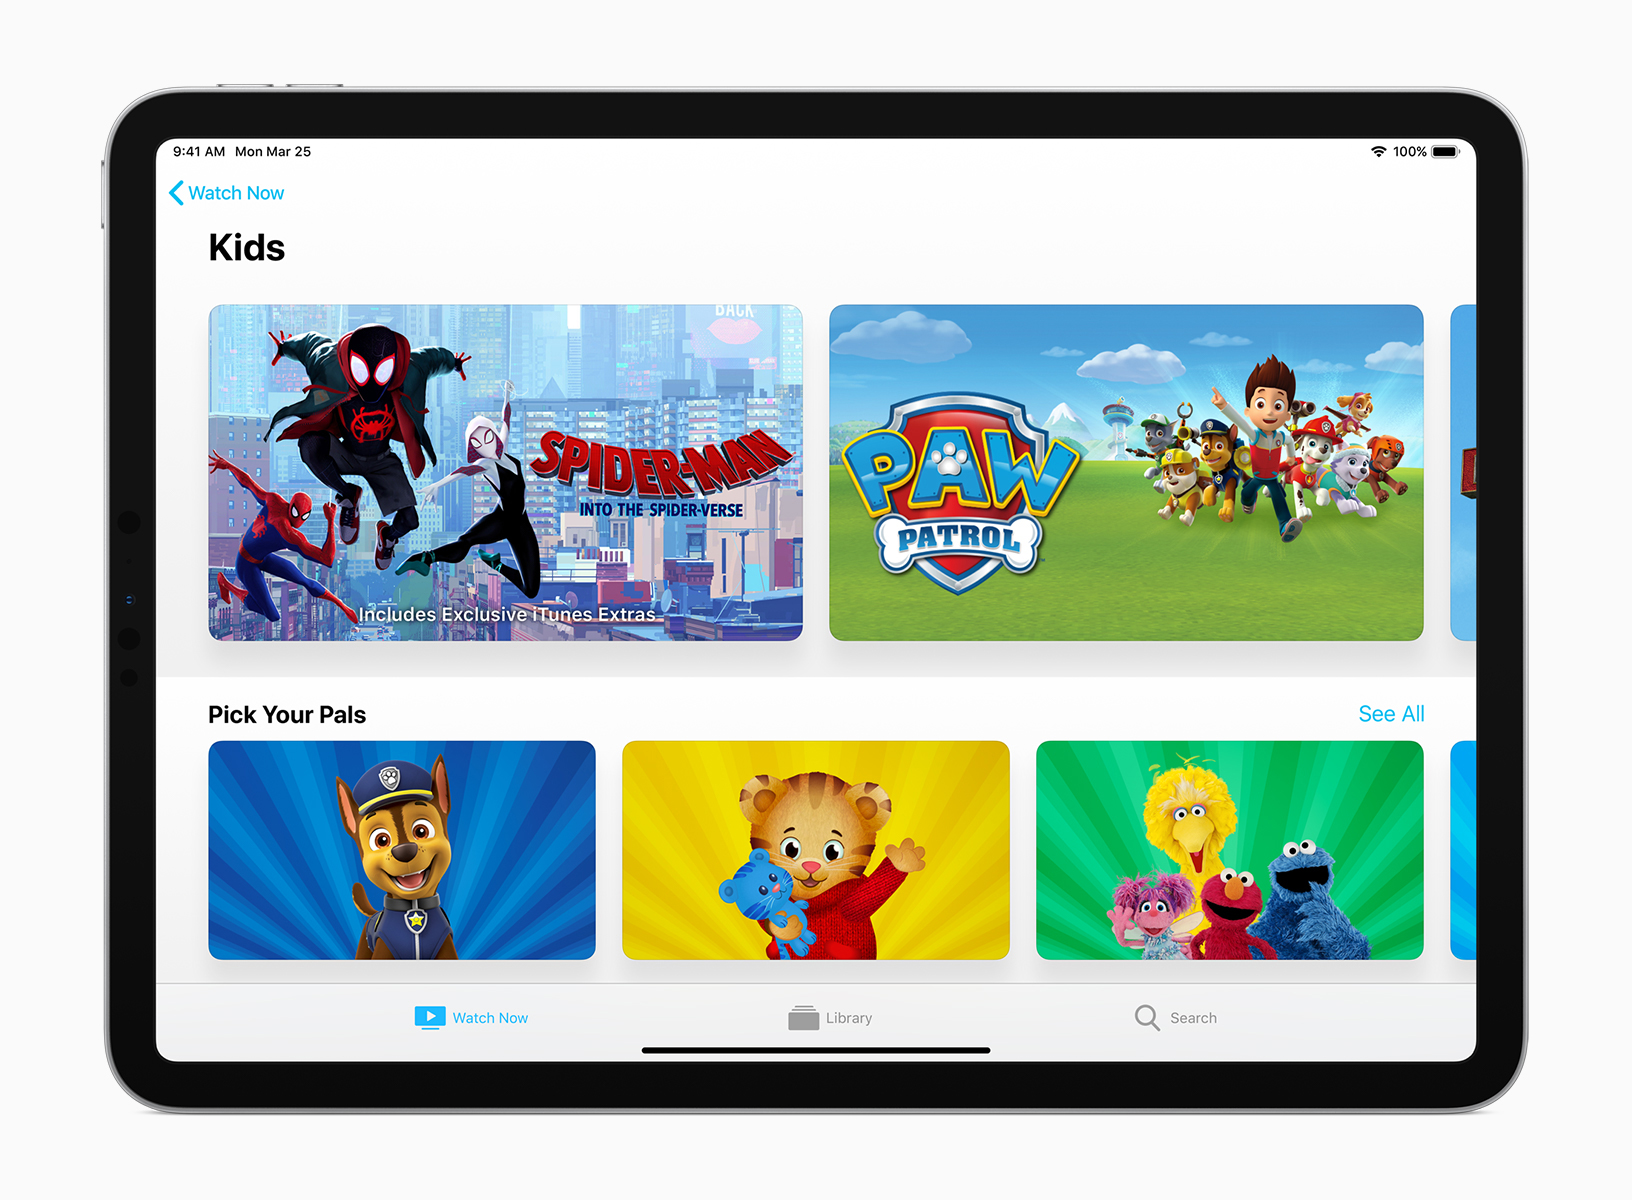 Apple_TV_app_iPad_kids_032519.jpg